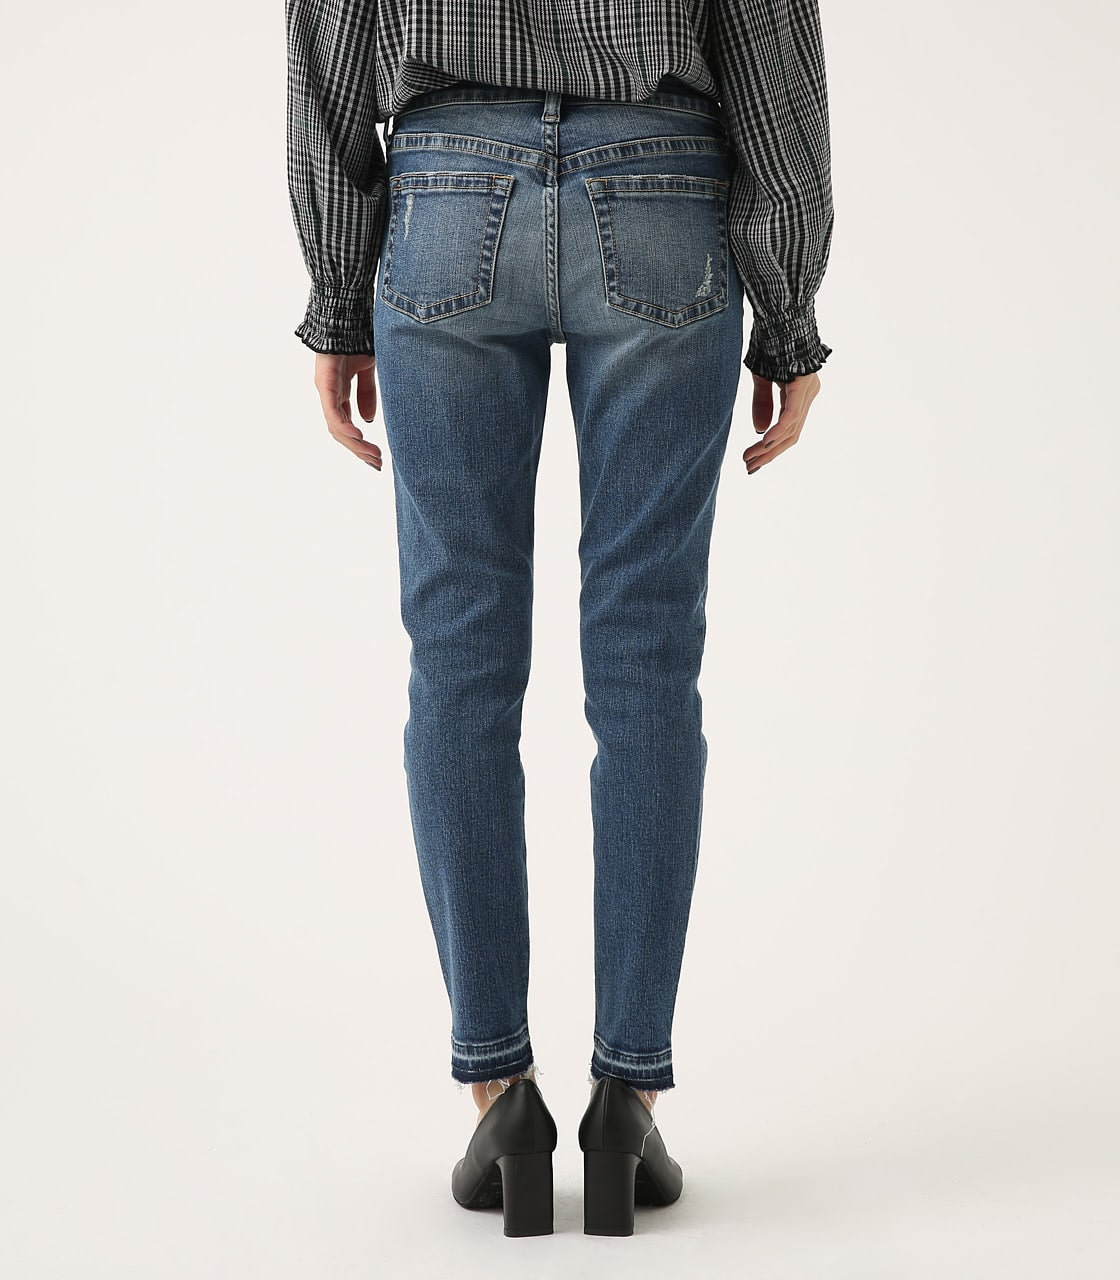 【AZUL BY MOUSSY】REPAIR DENIM SKINNY 詳細画像 BLU 7